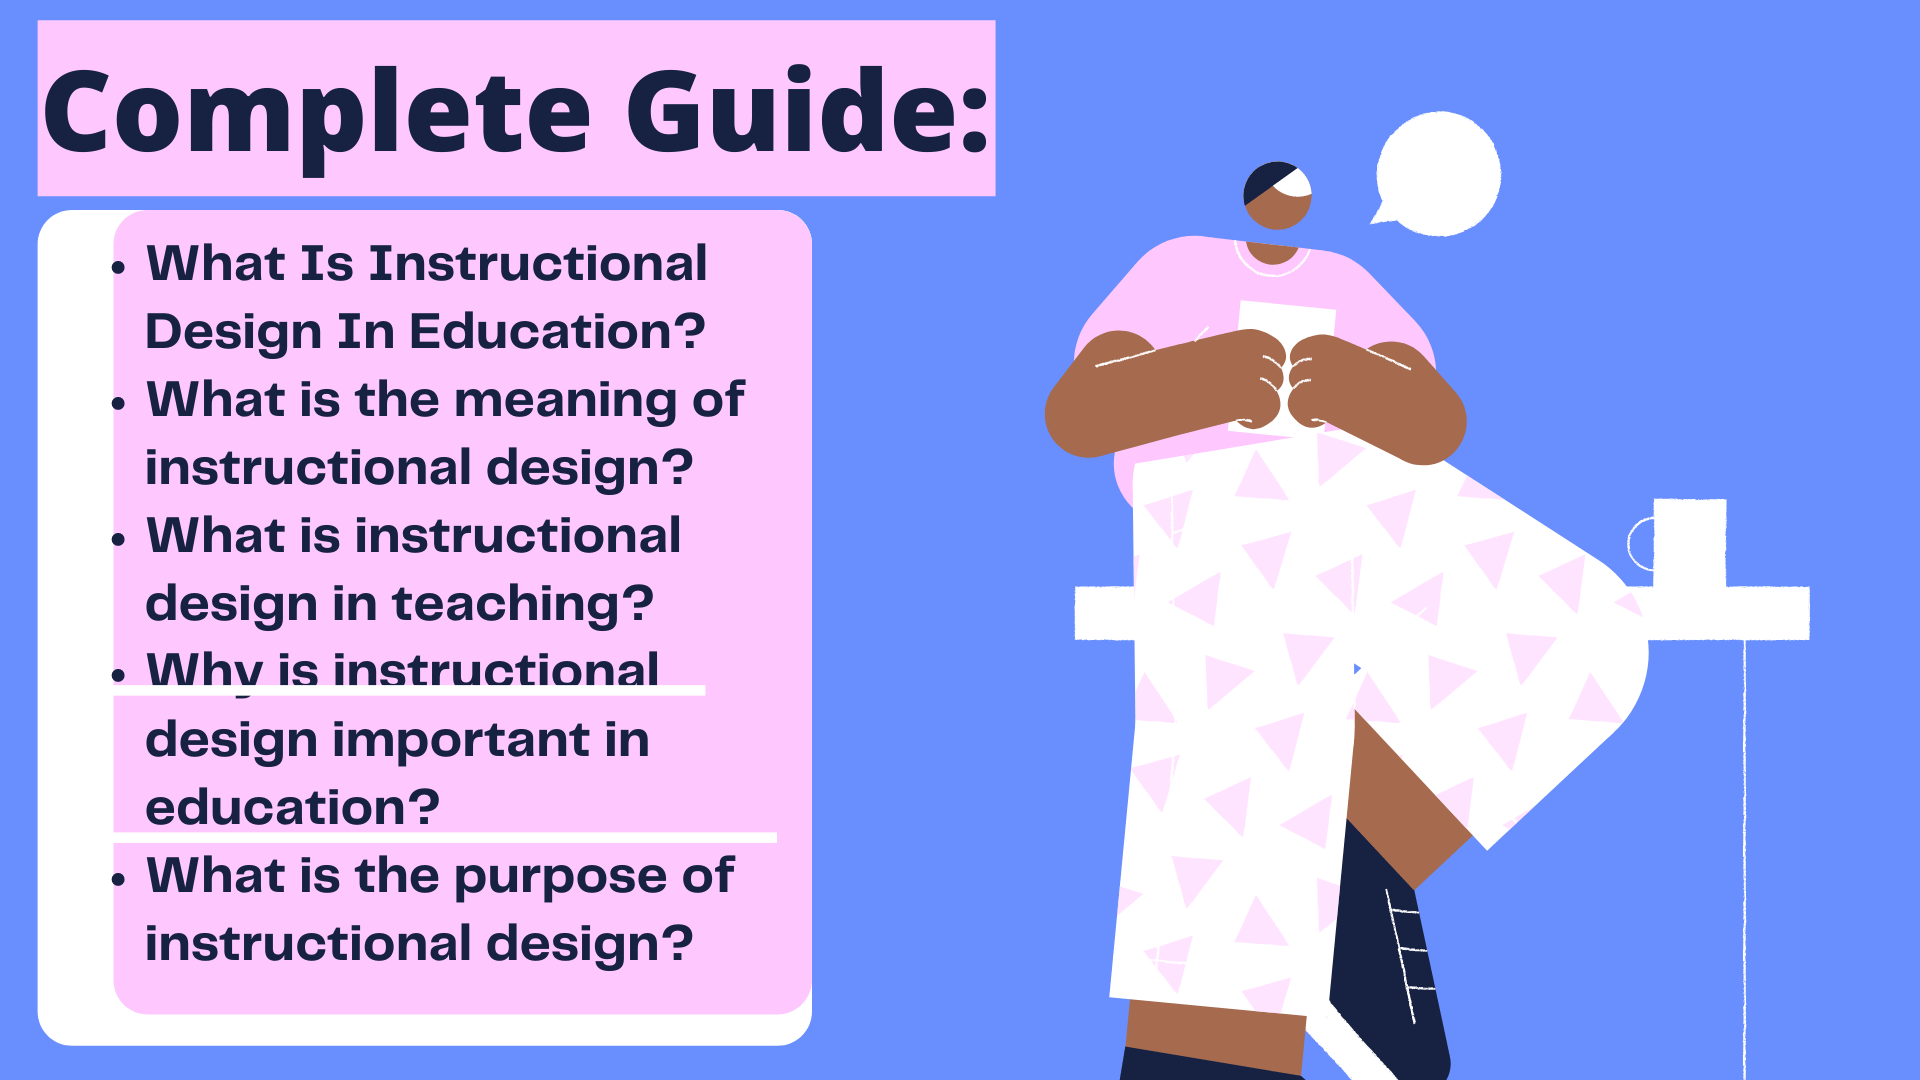 What Is Instructional Design In Education,What is the meaning of instructional design,What is instructional design in teaching,Why is instructional design important in education,What is the purpose of instructional design